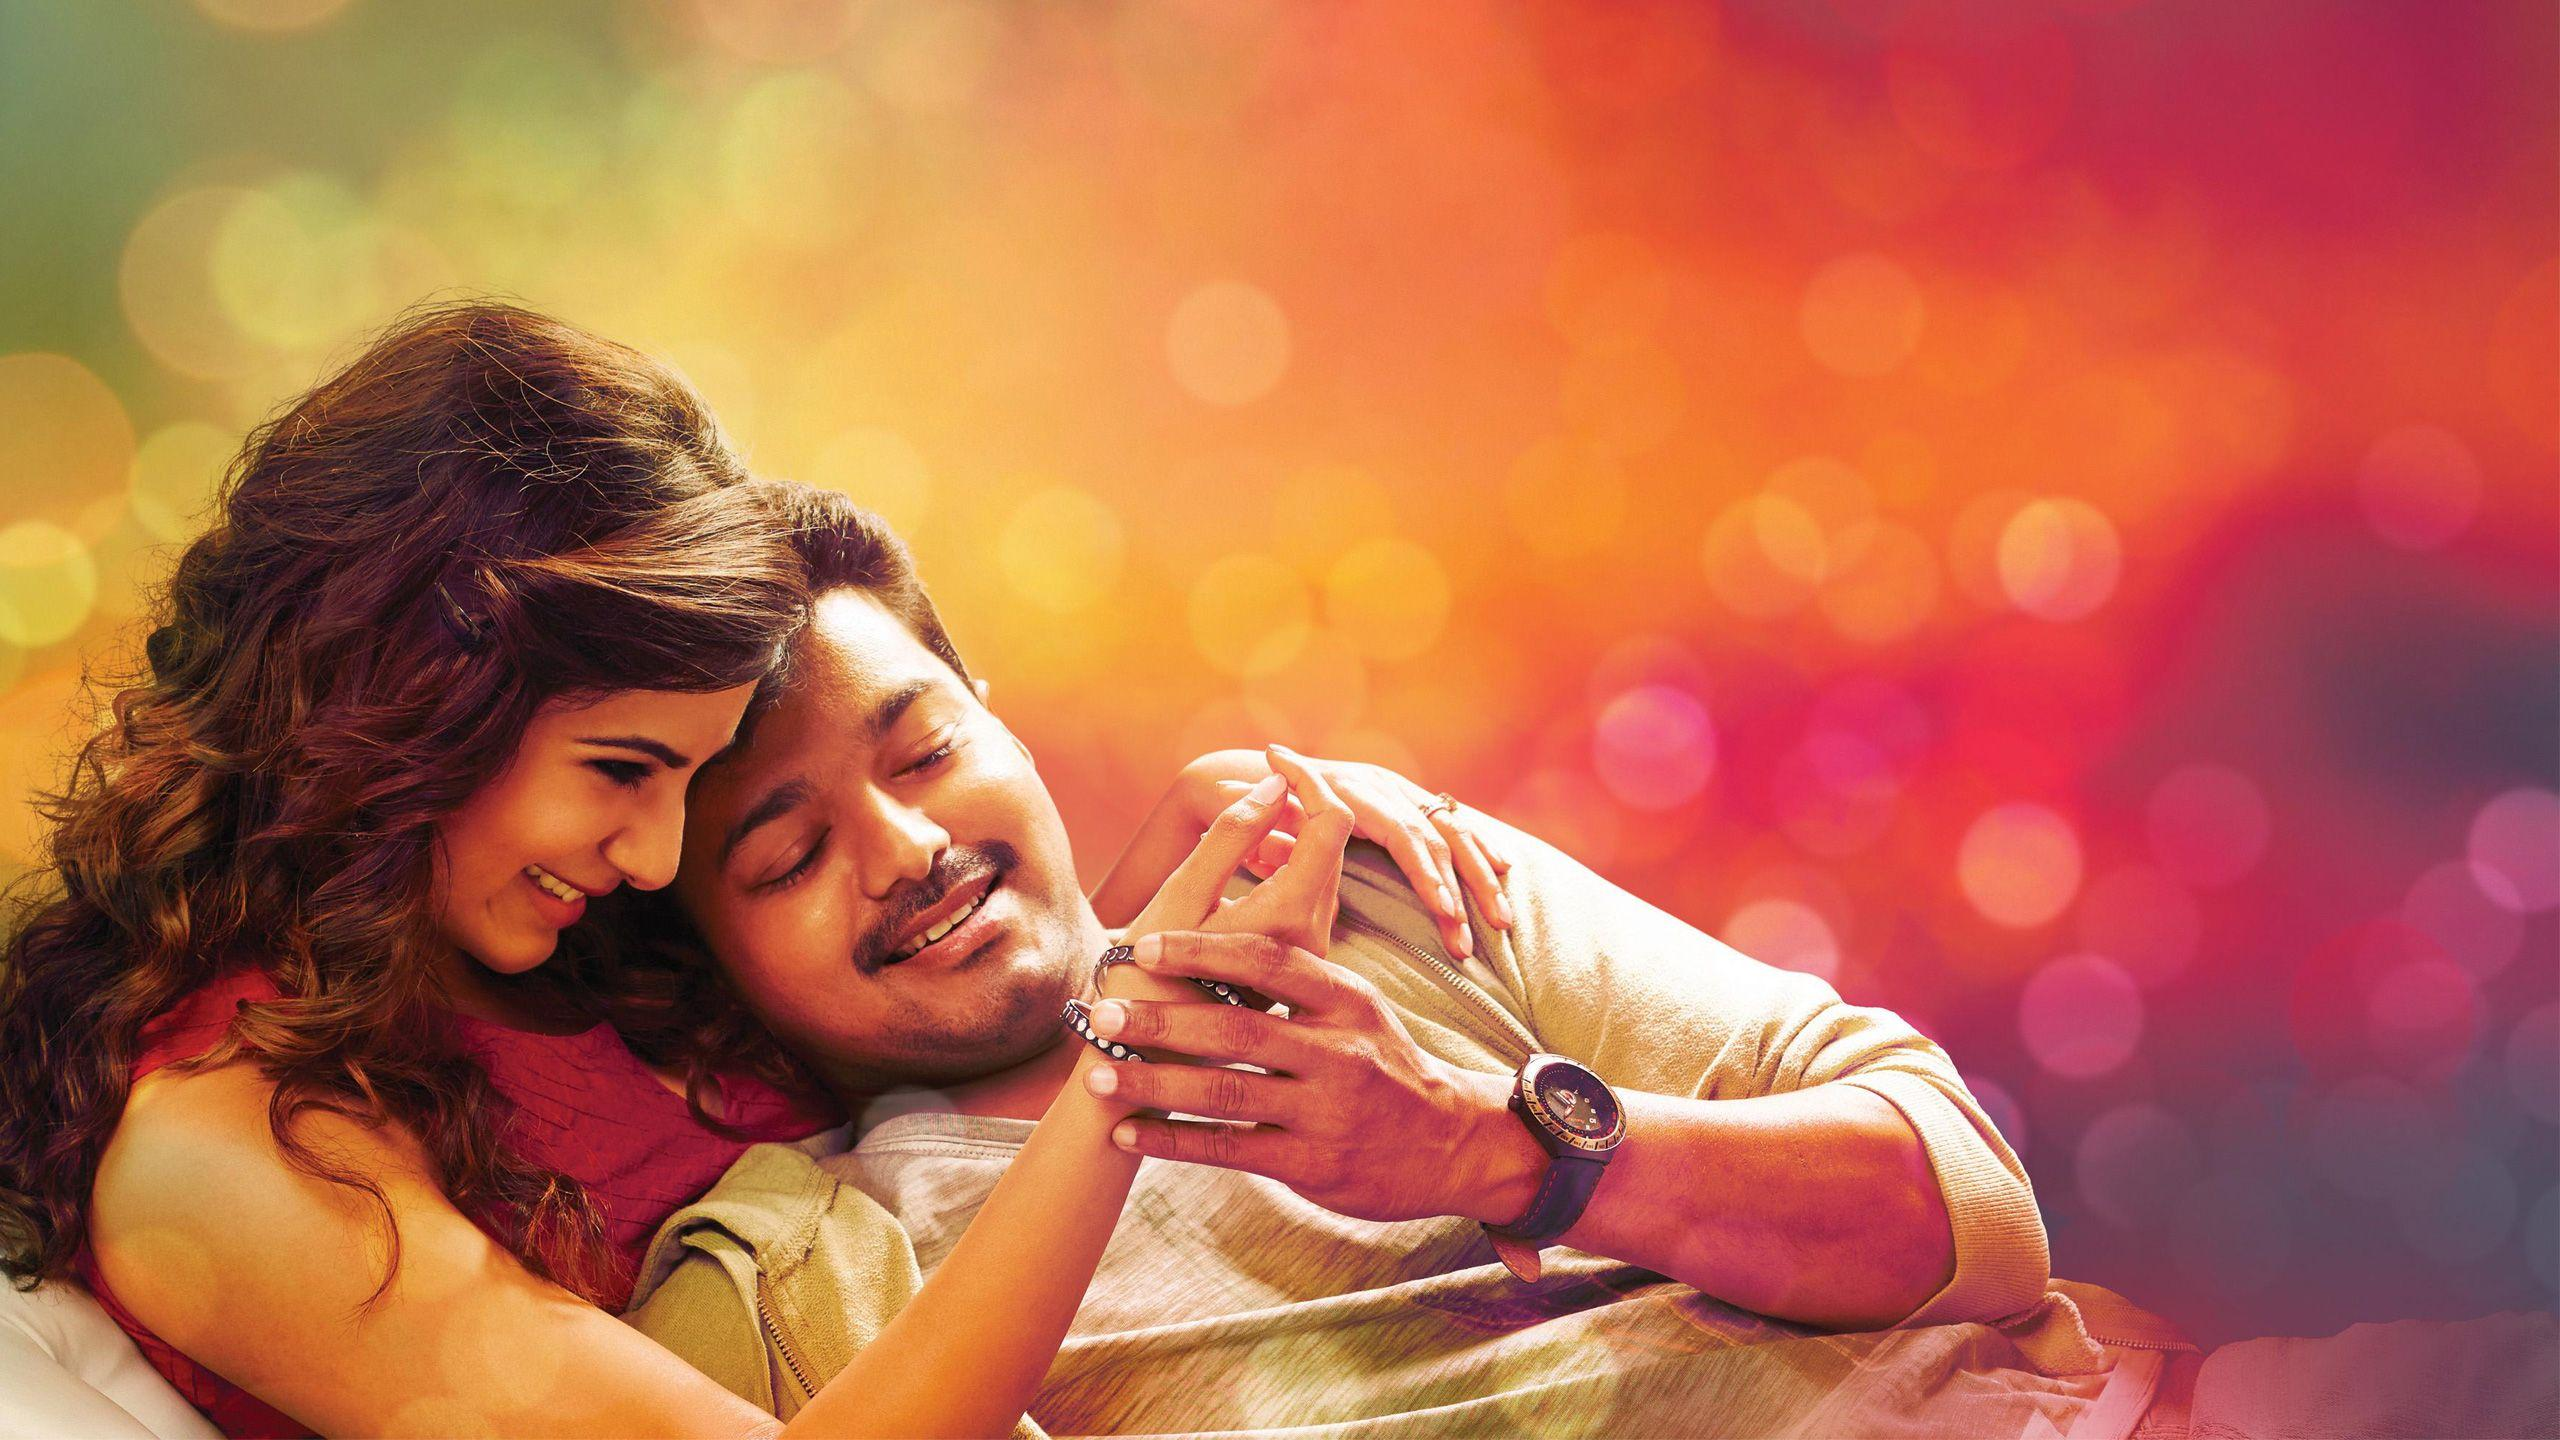 Tamil Movie Hd Wallpapers Top Free Tamil Movie Hd Backgrounds Wallpaperaccess